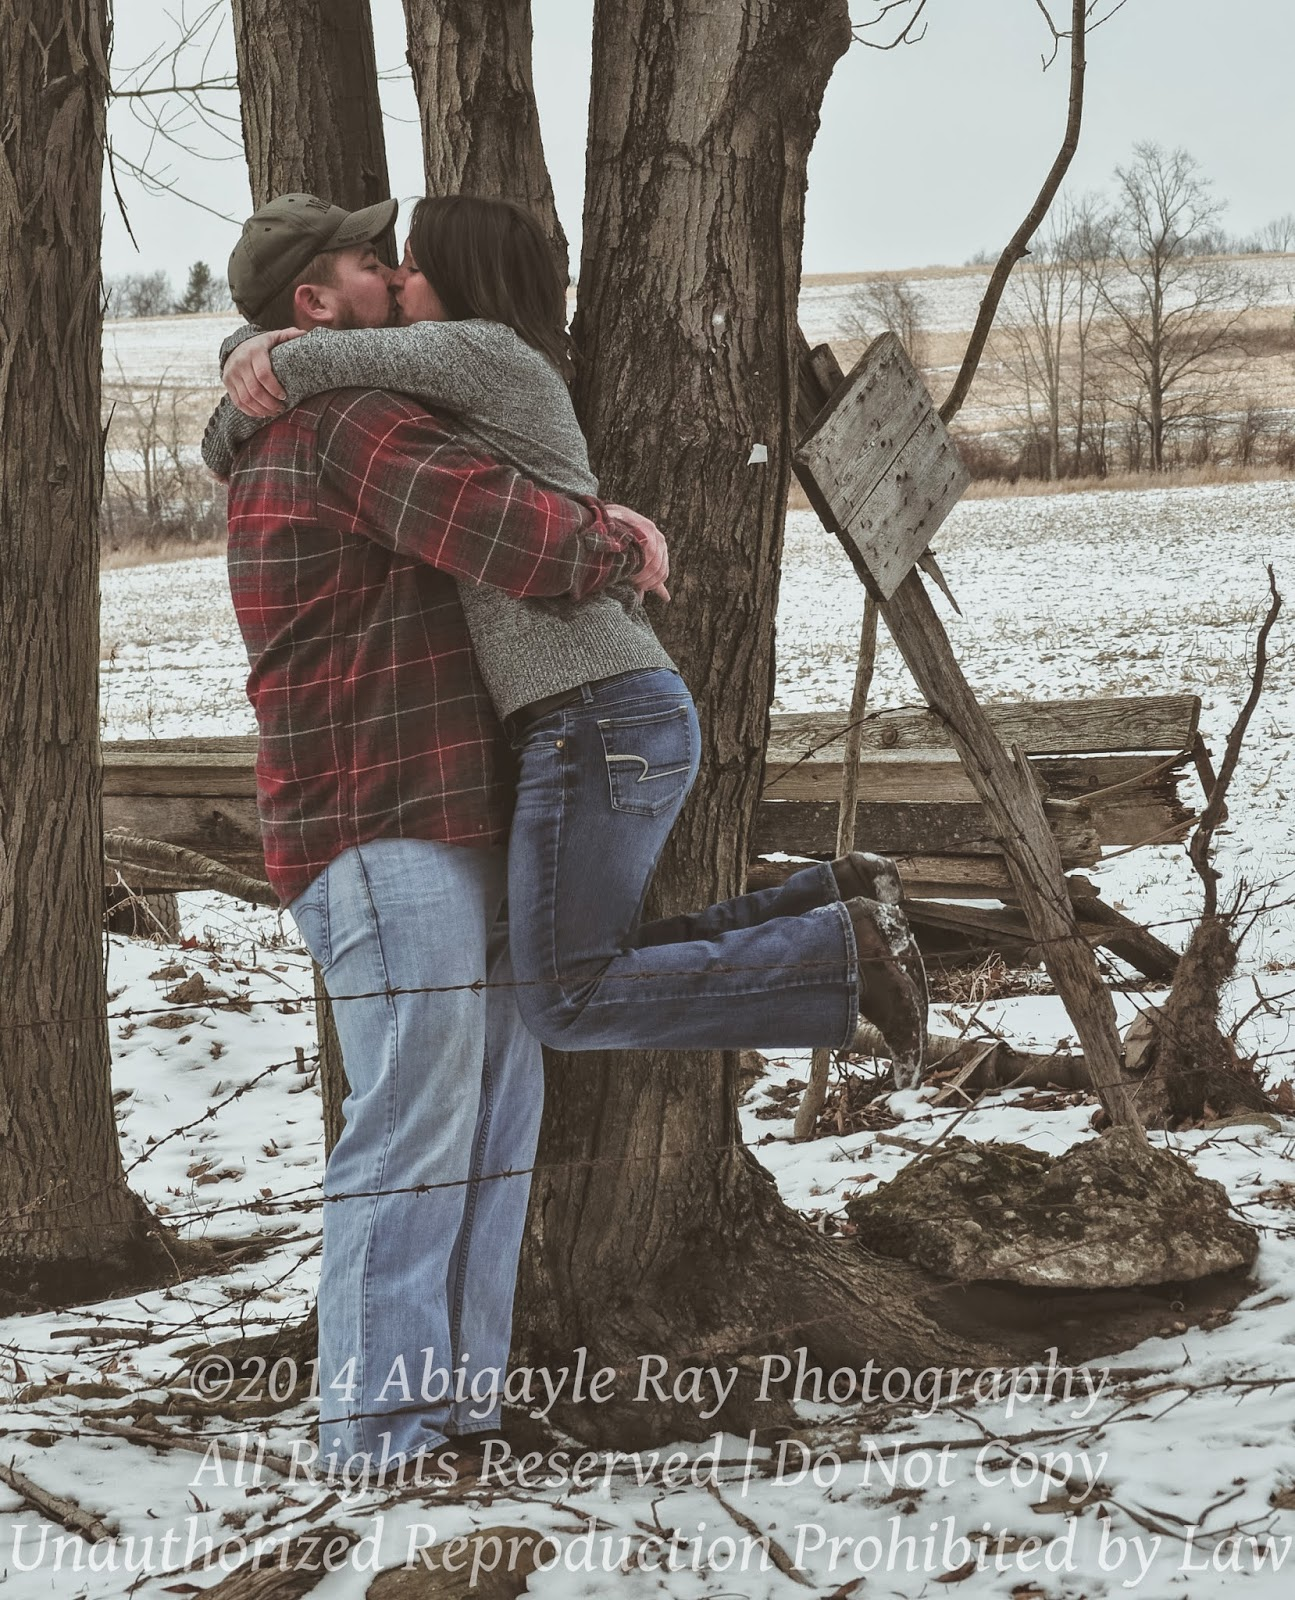 Abigayle Ray Photography, Engagement Photography Elmira, Engagement Photography Horseheads, Engagement Photography Corning, Engagement Photography Watkins Glen, Engagement Photography Waverly, Engagement Photography Sayre, Engagement Photography Athens, Engagement Photography Towanda, Engagement Photography Troy, Engagement Photography Canton, Engagement Photography Mansfield